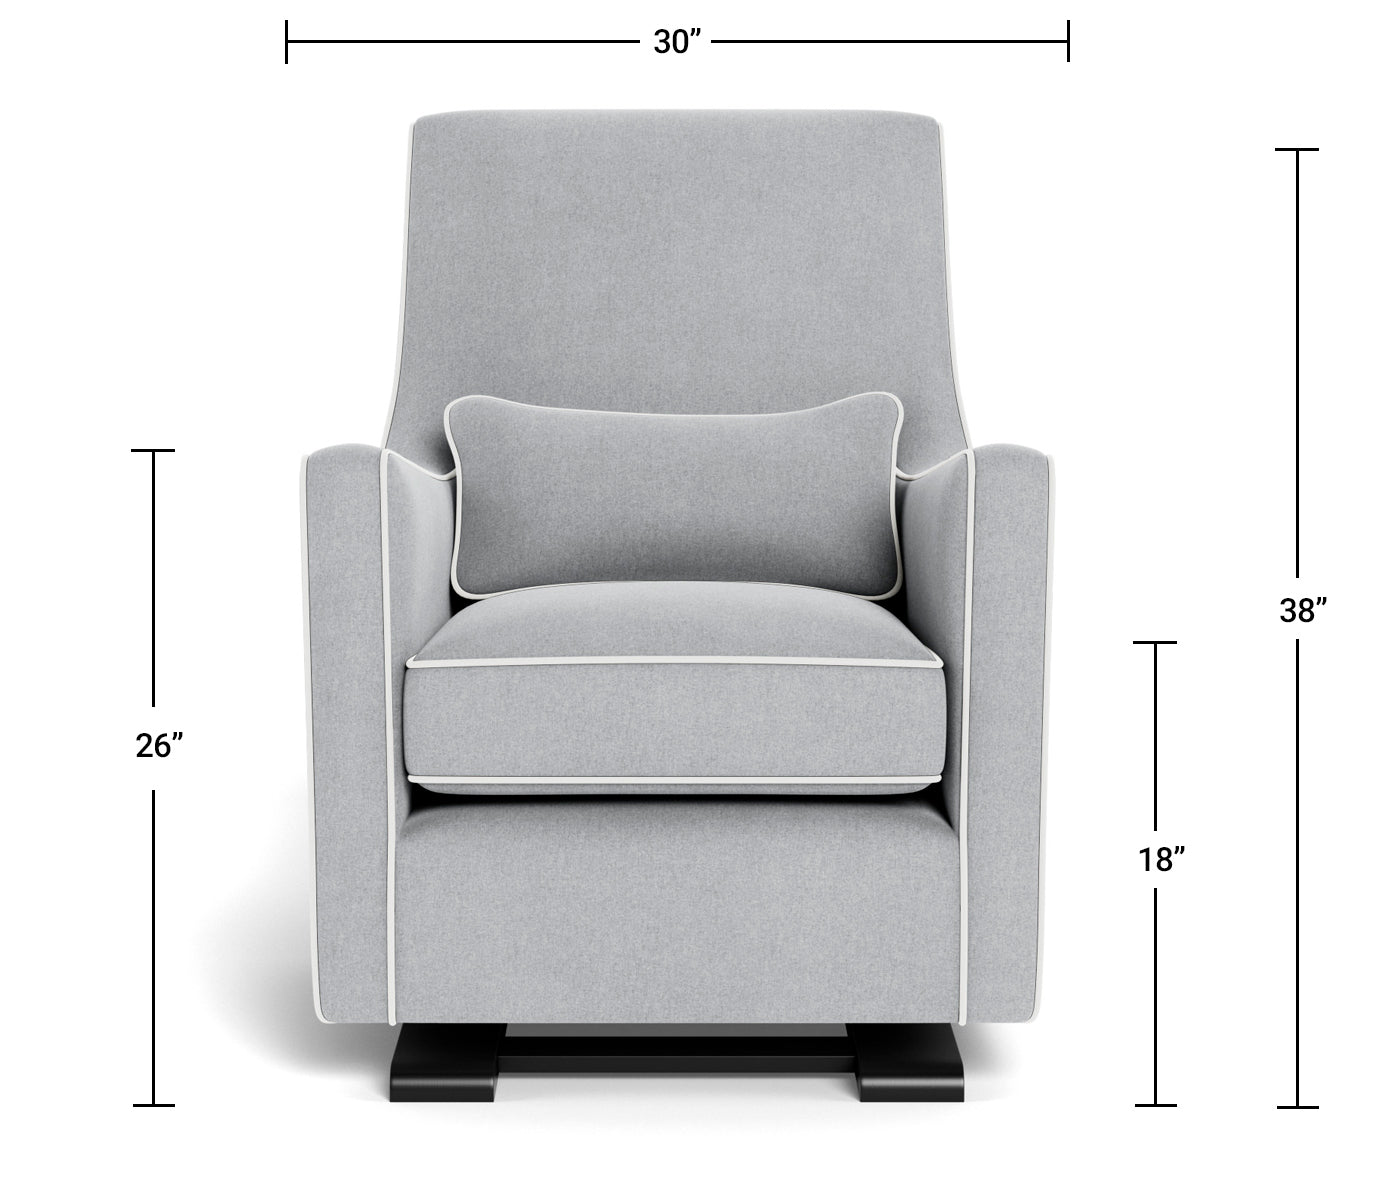 Modern Nursery Glider Chair - Luca Glider Chair Dimensions Front View